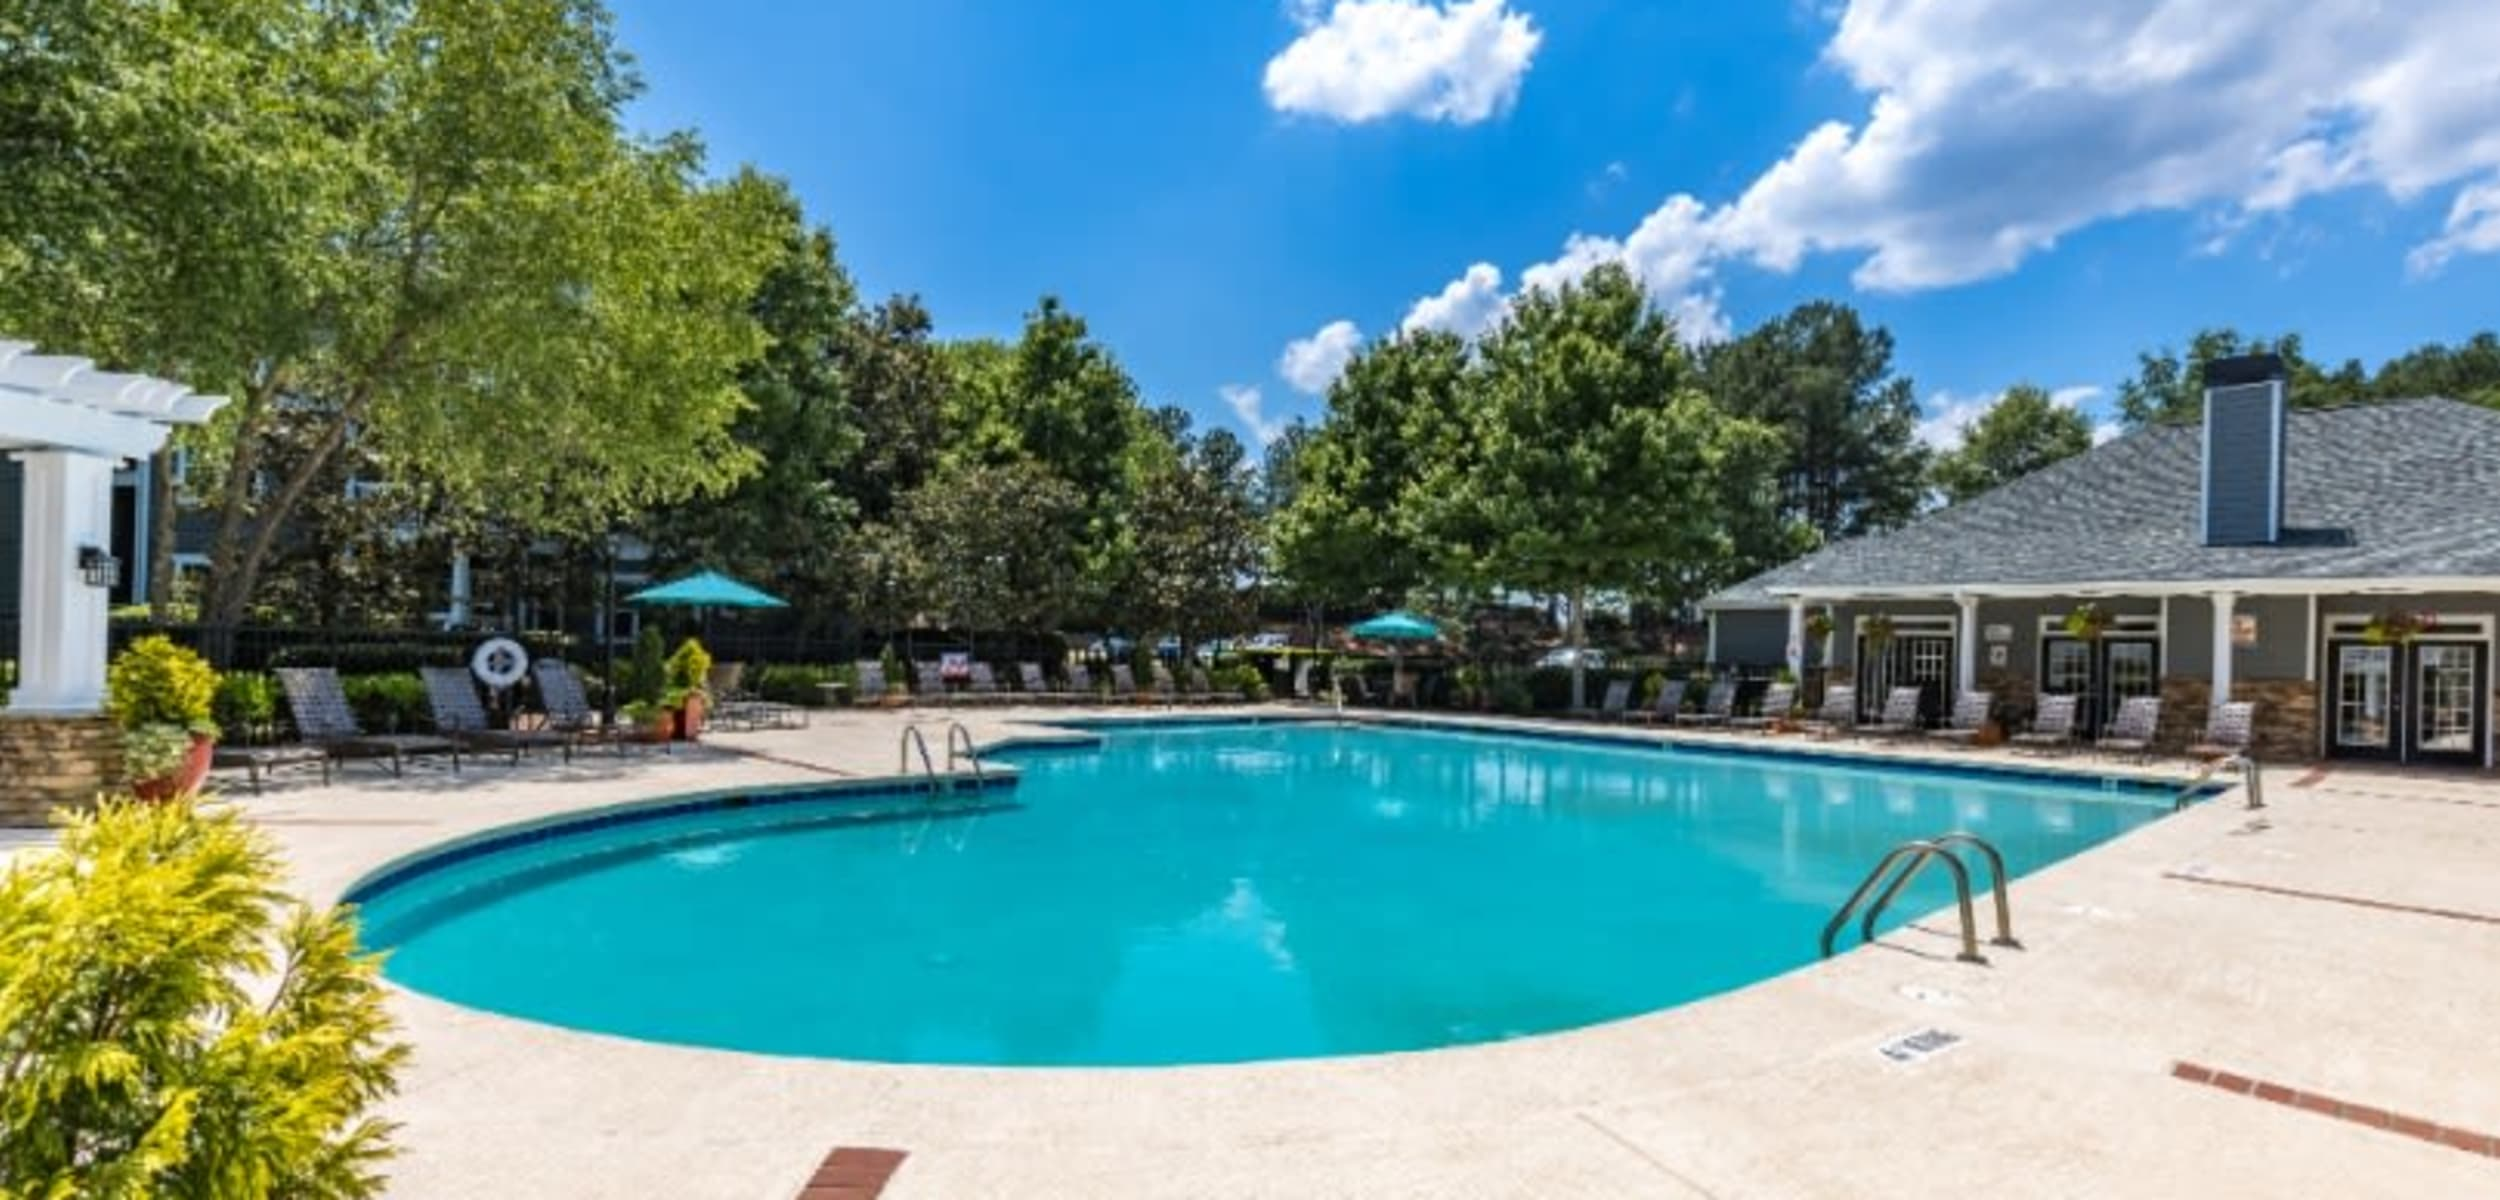 Lounge chairs lined up next to pool at Marquis on Cary Parkway in Morrisville North Carolina,